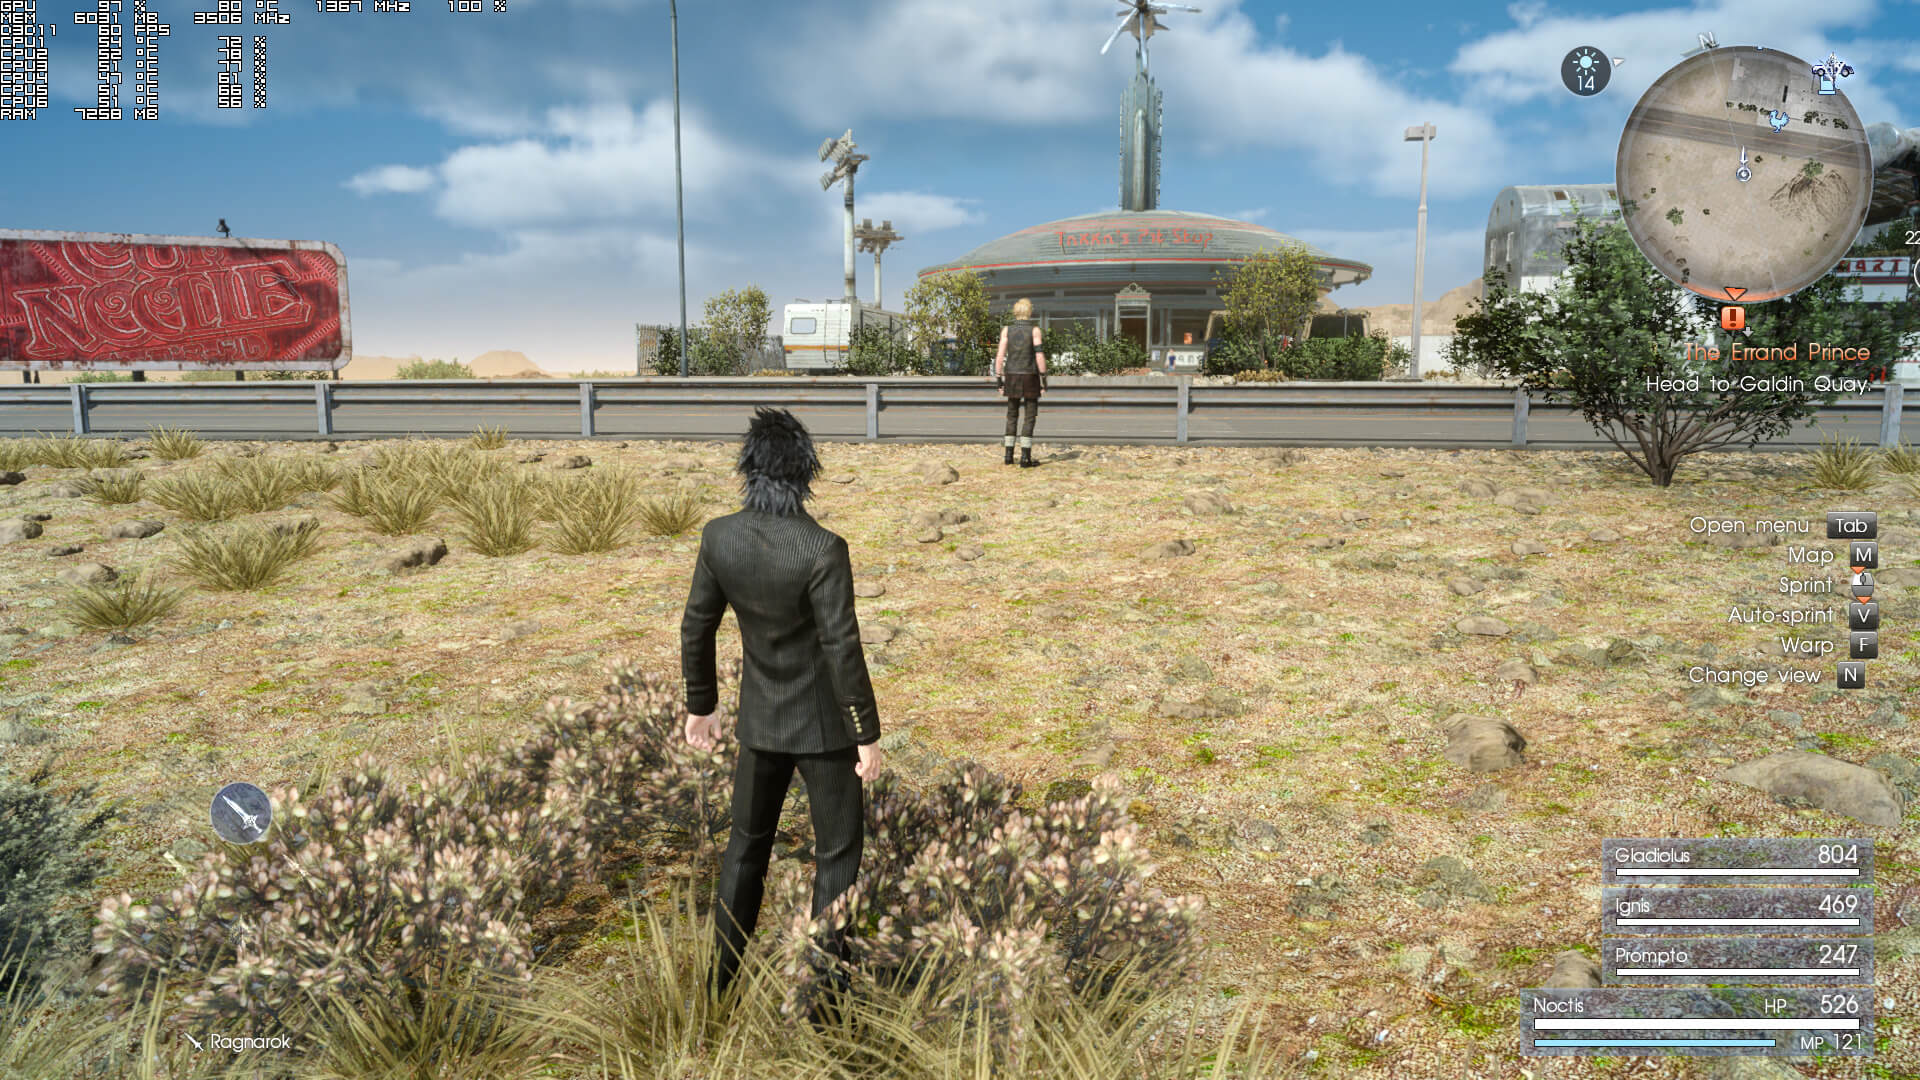 https://www.dsogaming.com/wp-content/uploads/2018/03/ffxv_s_2018_03_12_19_09_45_166.jpg